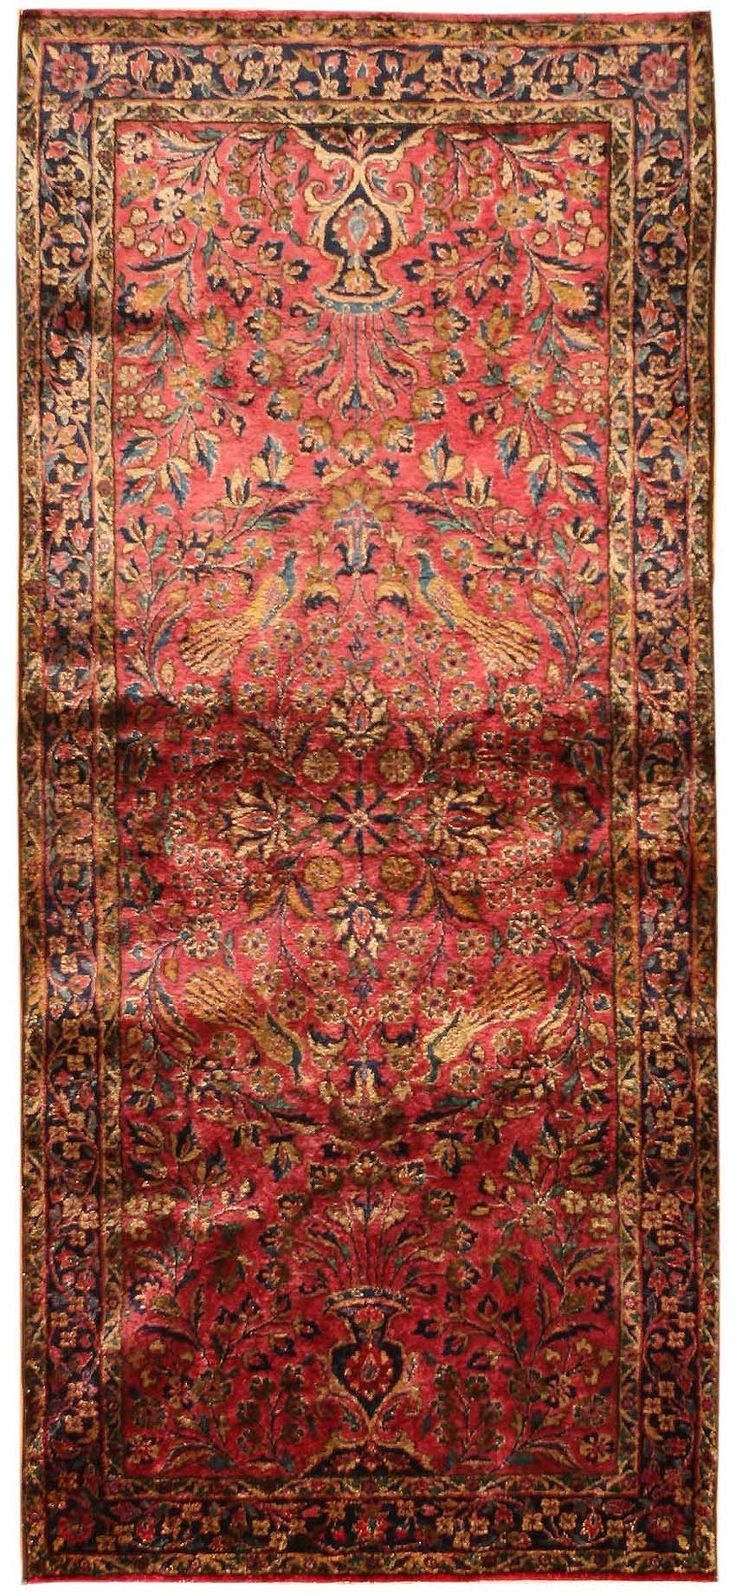 Antique Kashan Rug, Persia - an antique Kashan rug that was originally hand made in Persia. With rich reds, beautiful Persian blues, and luminescent golden-yellows that are accentuated by the velvety silk pile, this classic Kashan carpet features a central medallion and two peacock-flanked vases that exemplify the luxurious tastes and styles favored by the region. This antique rug is a genuine work of art, the impeccable craftsmanship.